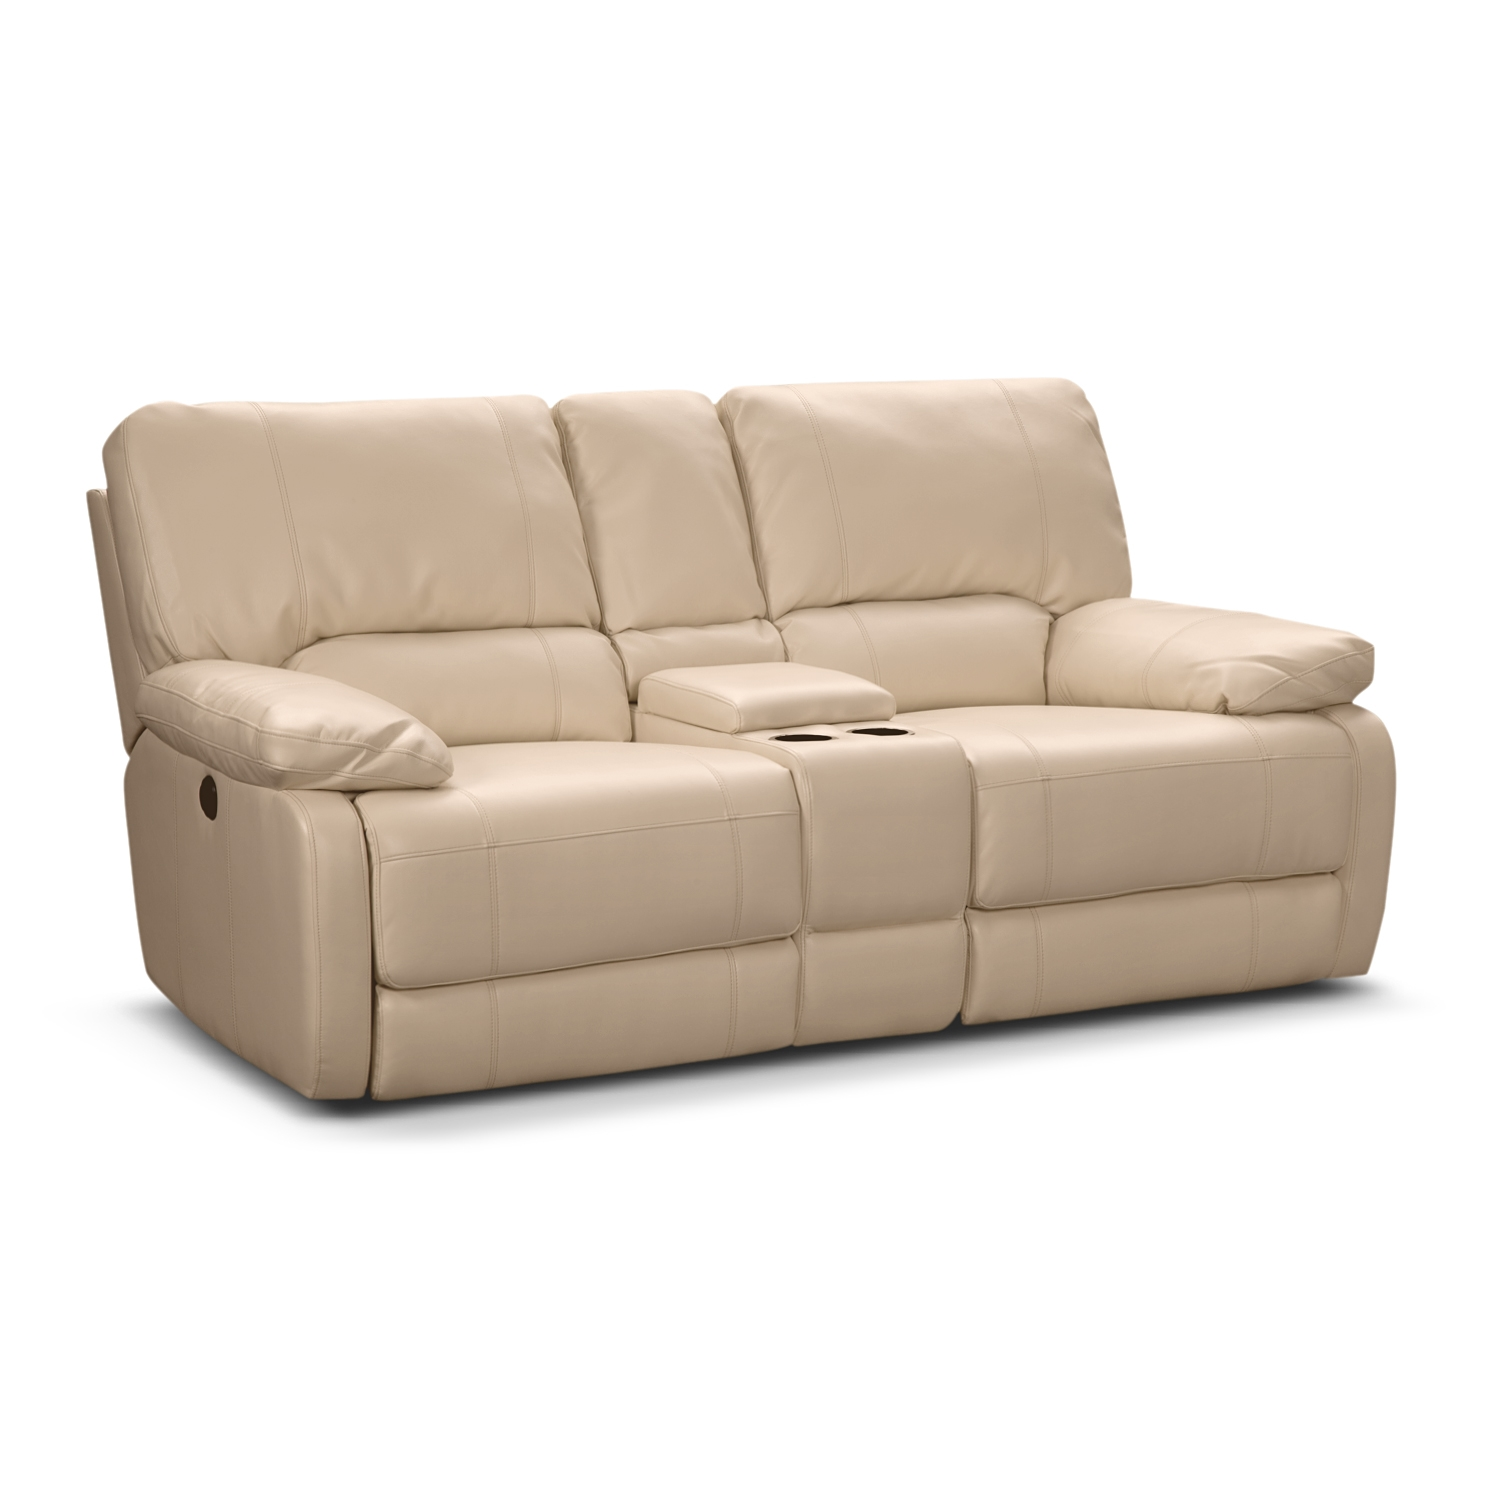 Image of: Large Rocking Recliner Chair